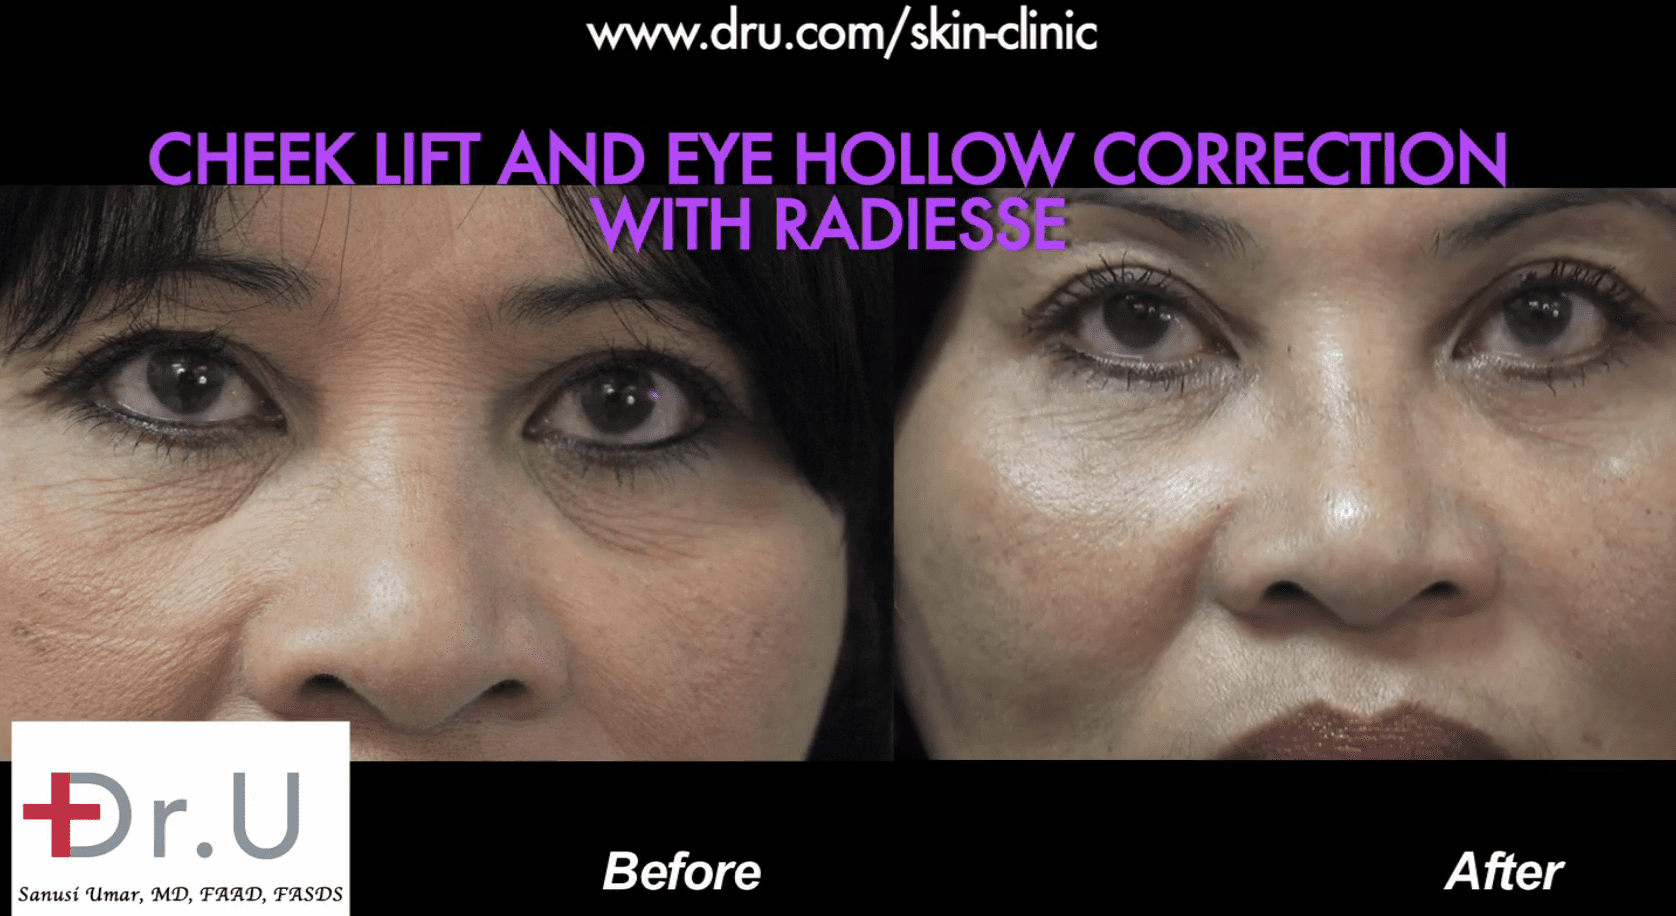 Under eye hollow filler before and after photos using Radiesse.*